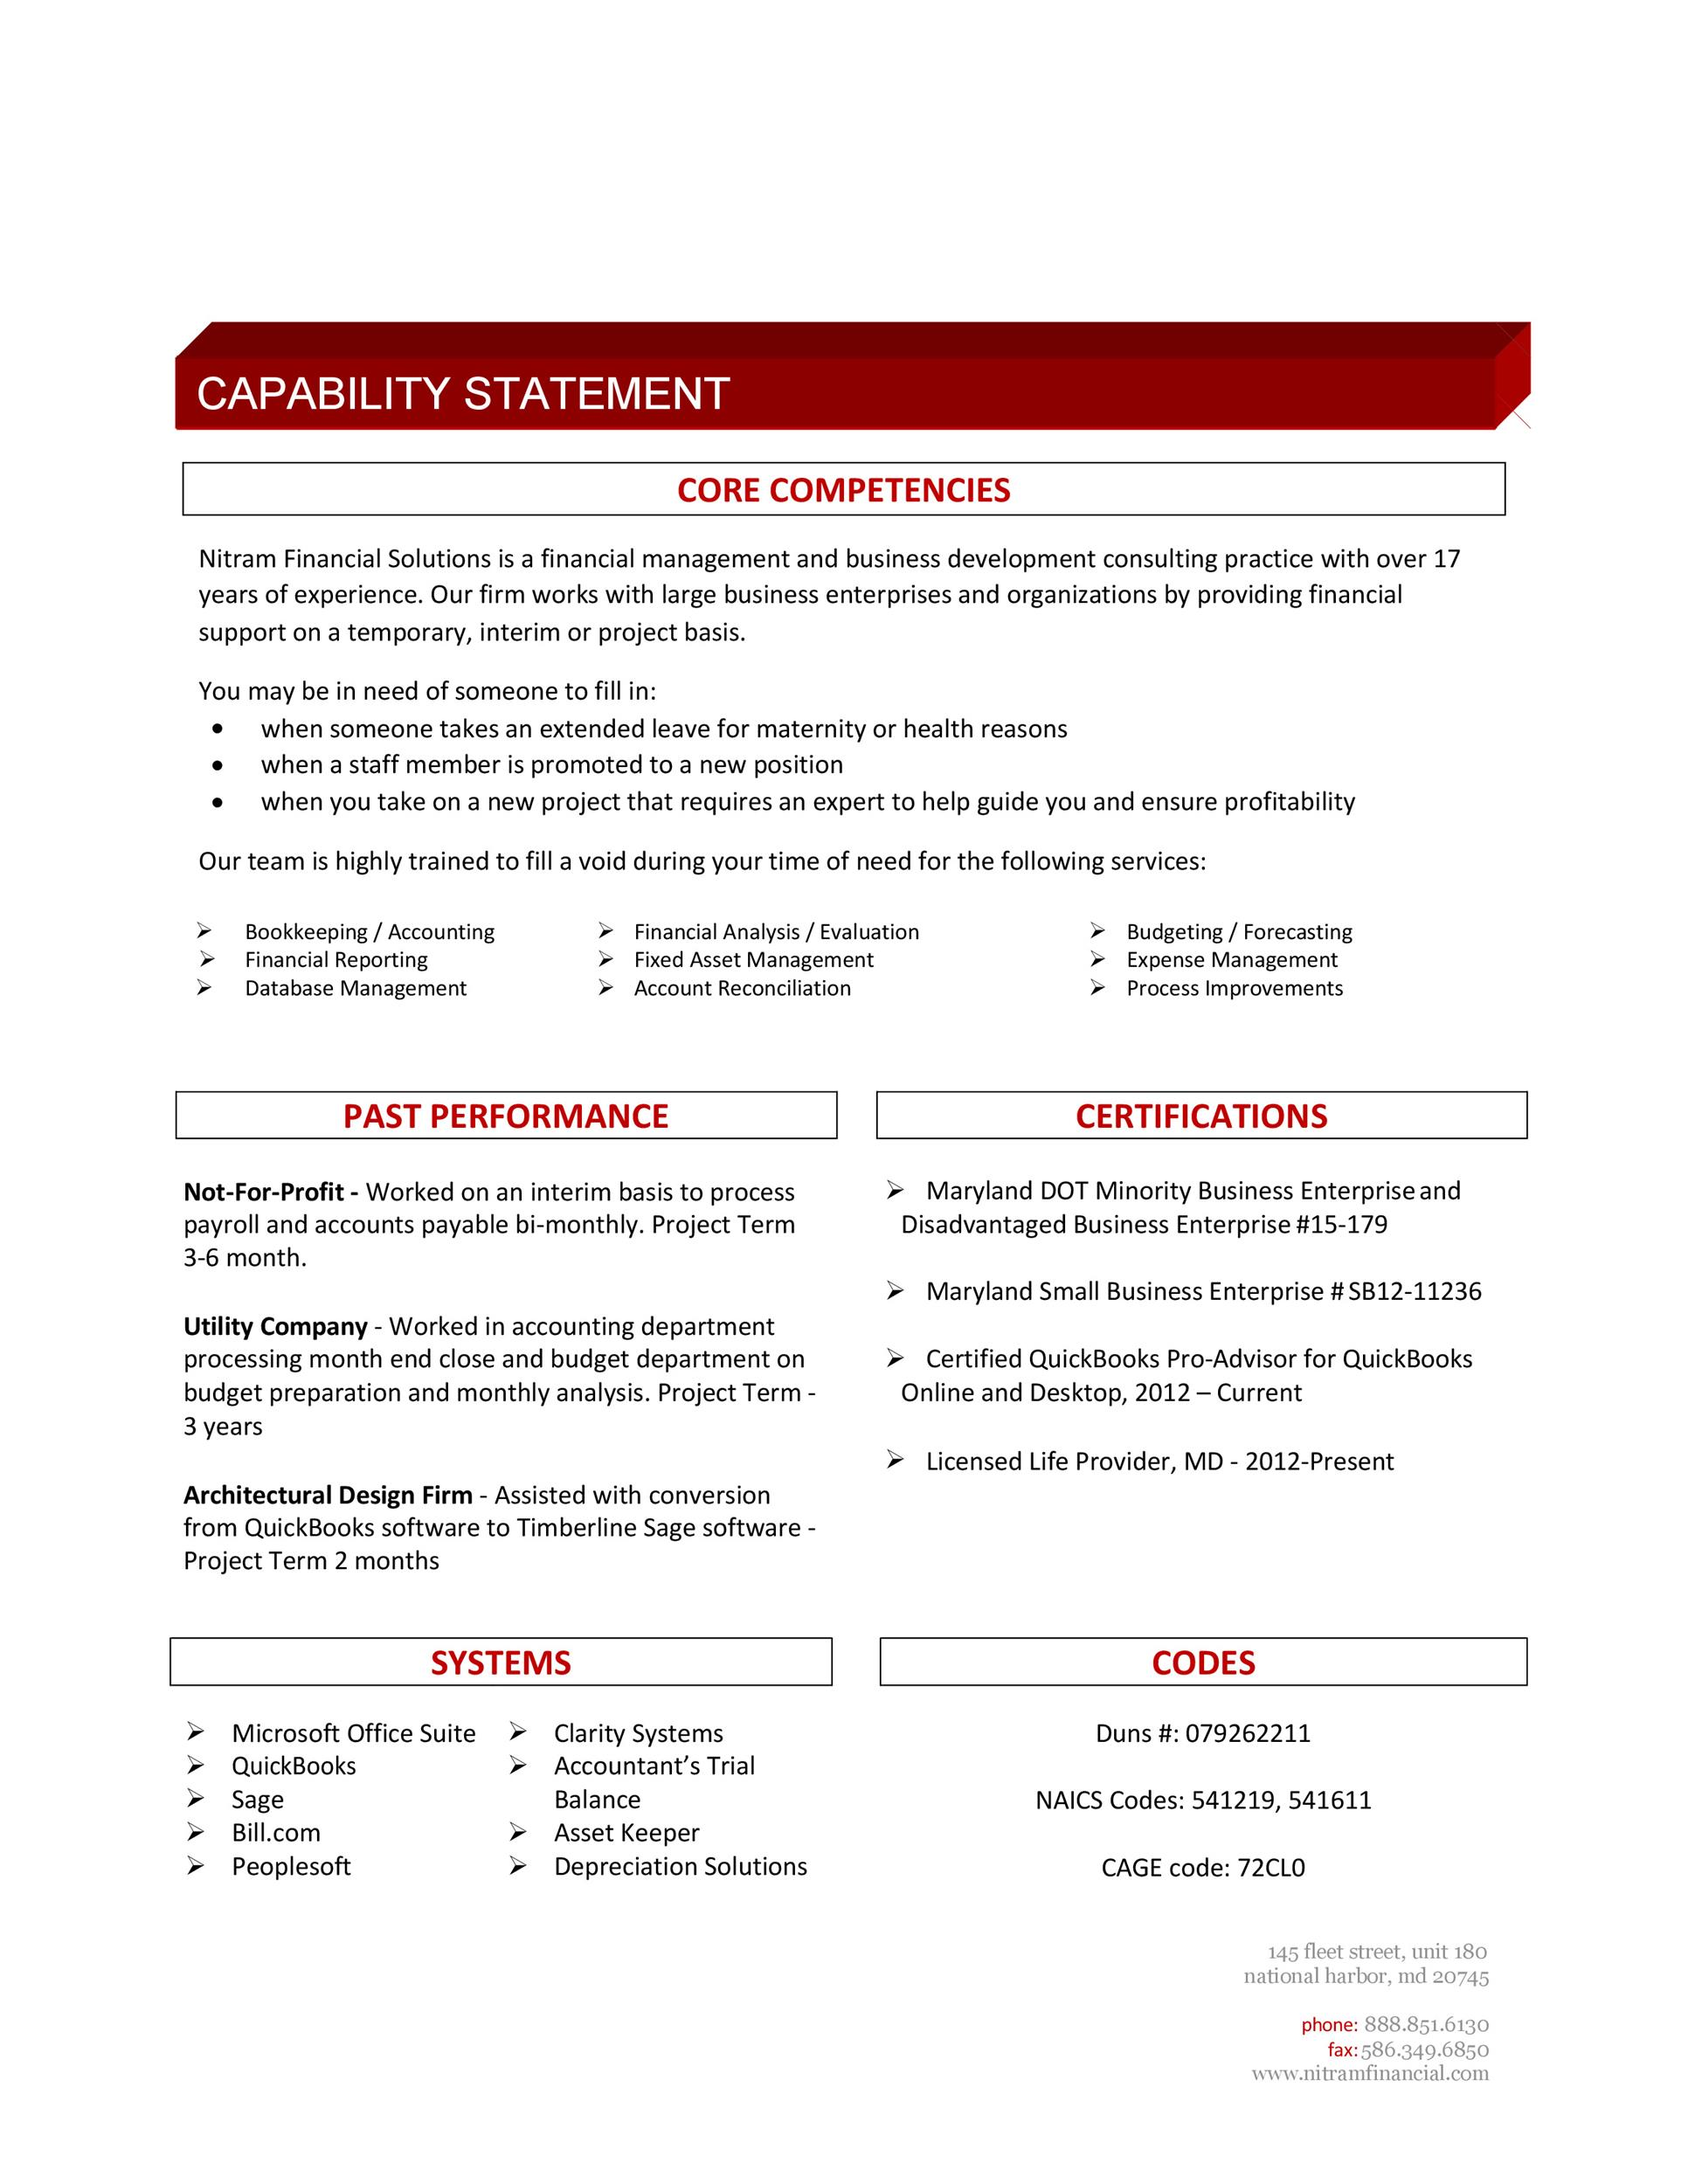 Free capability statement 39